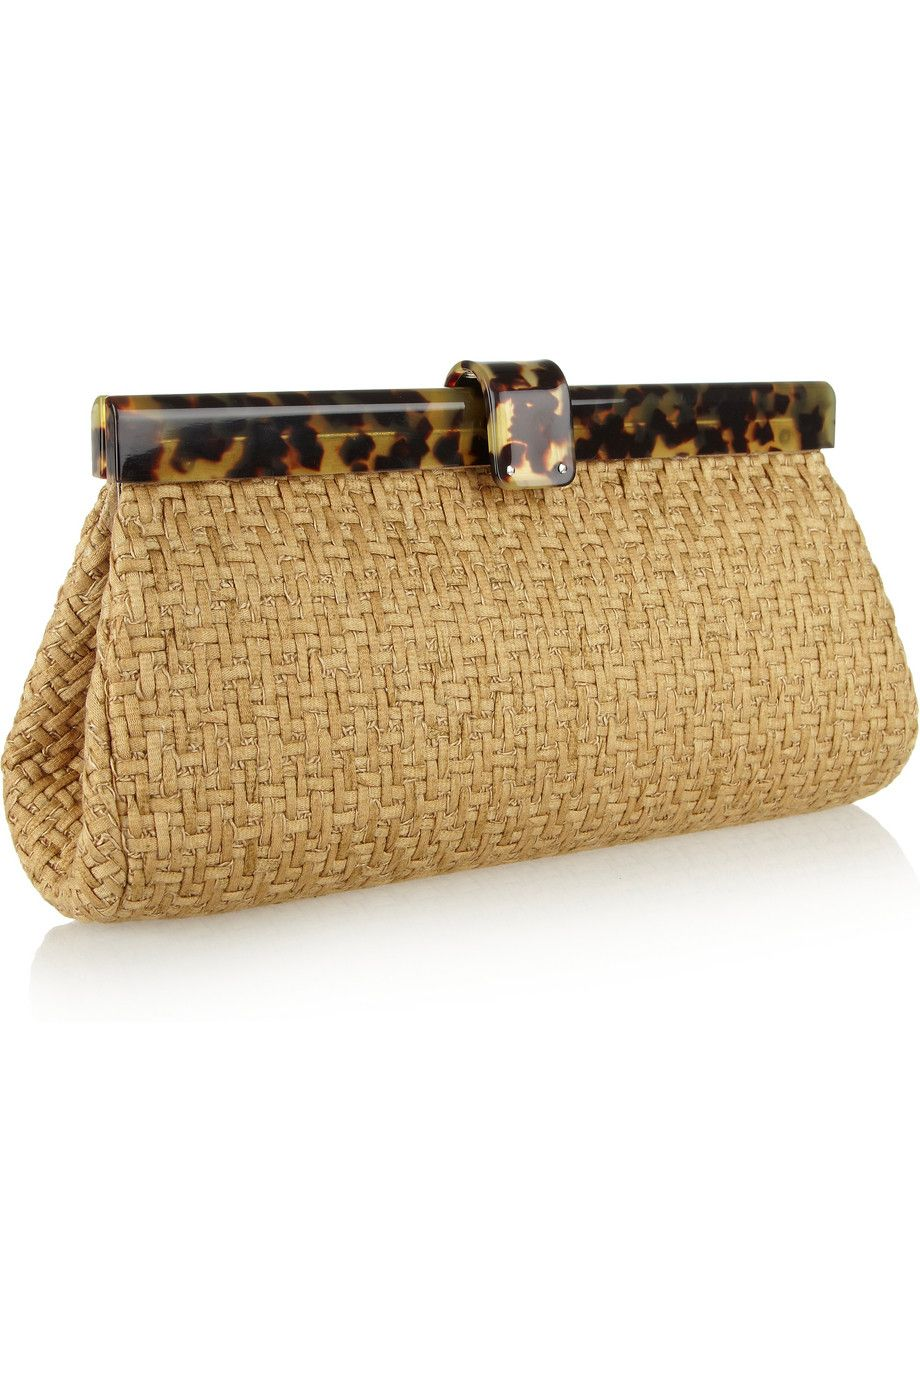 Ralph Lauren Woven-twill and tortoiseshell acetate clutch  b8083439c26c4